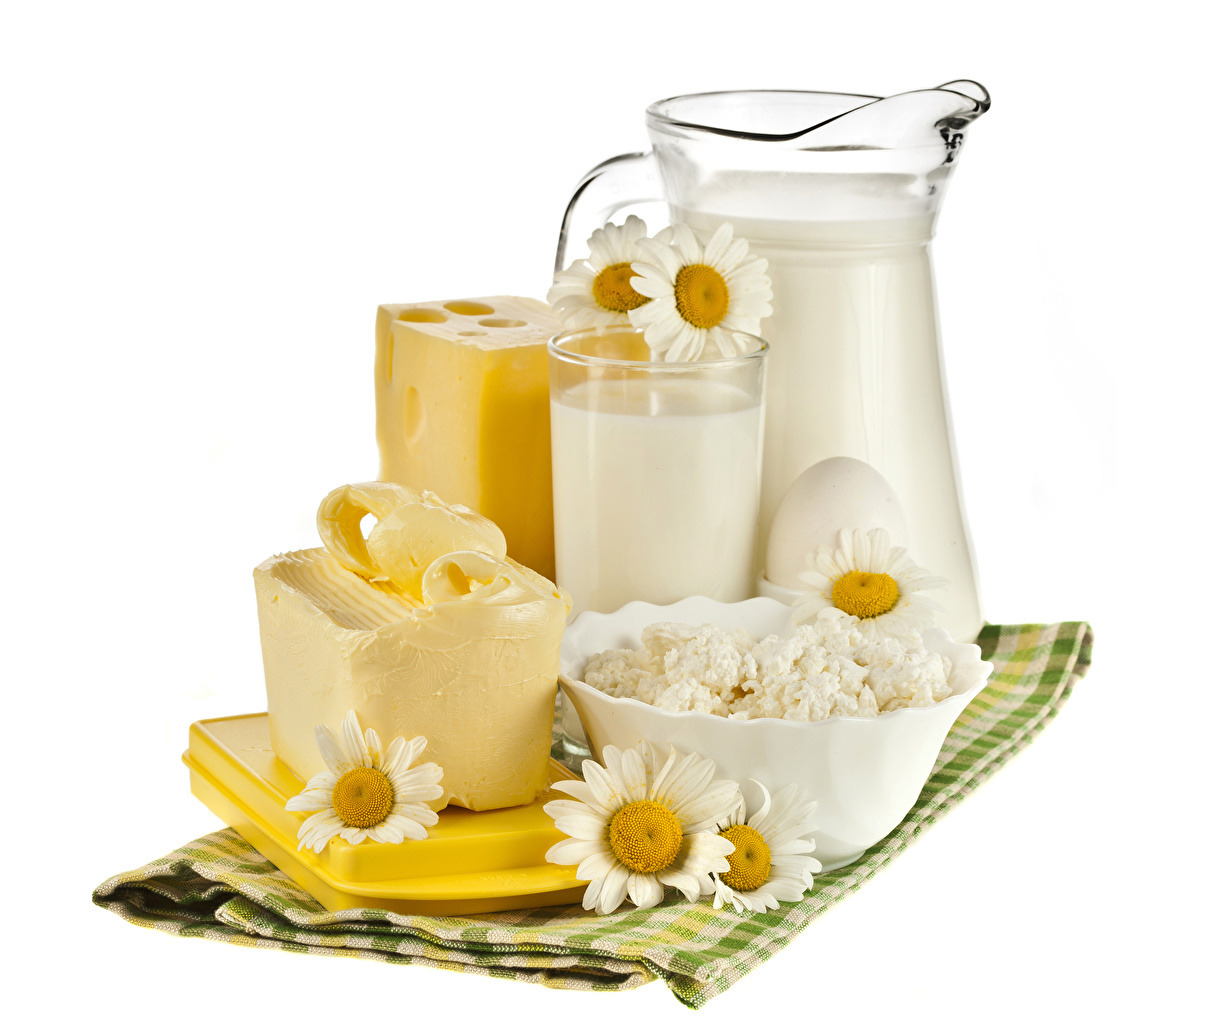 Image Milk Oil Quark curd cottage farmer cheese Cheese Camomiles Jug container Highball glass Food White background jugs pitcher matricaria